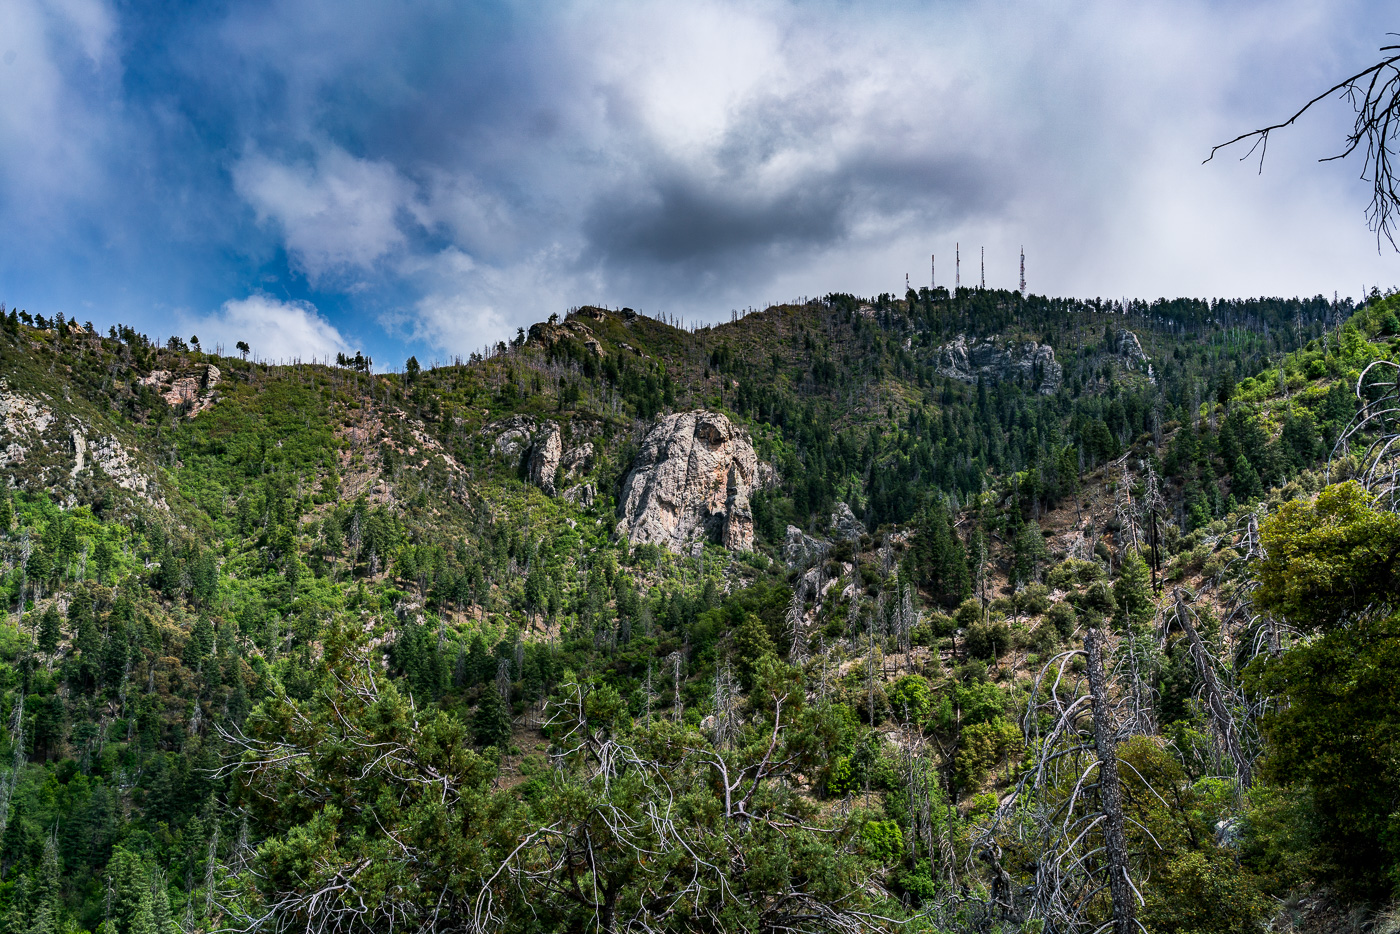 Mount Bigelow and the Butterfly Wall from the Butterfly Trail. May 2017.